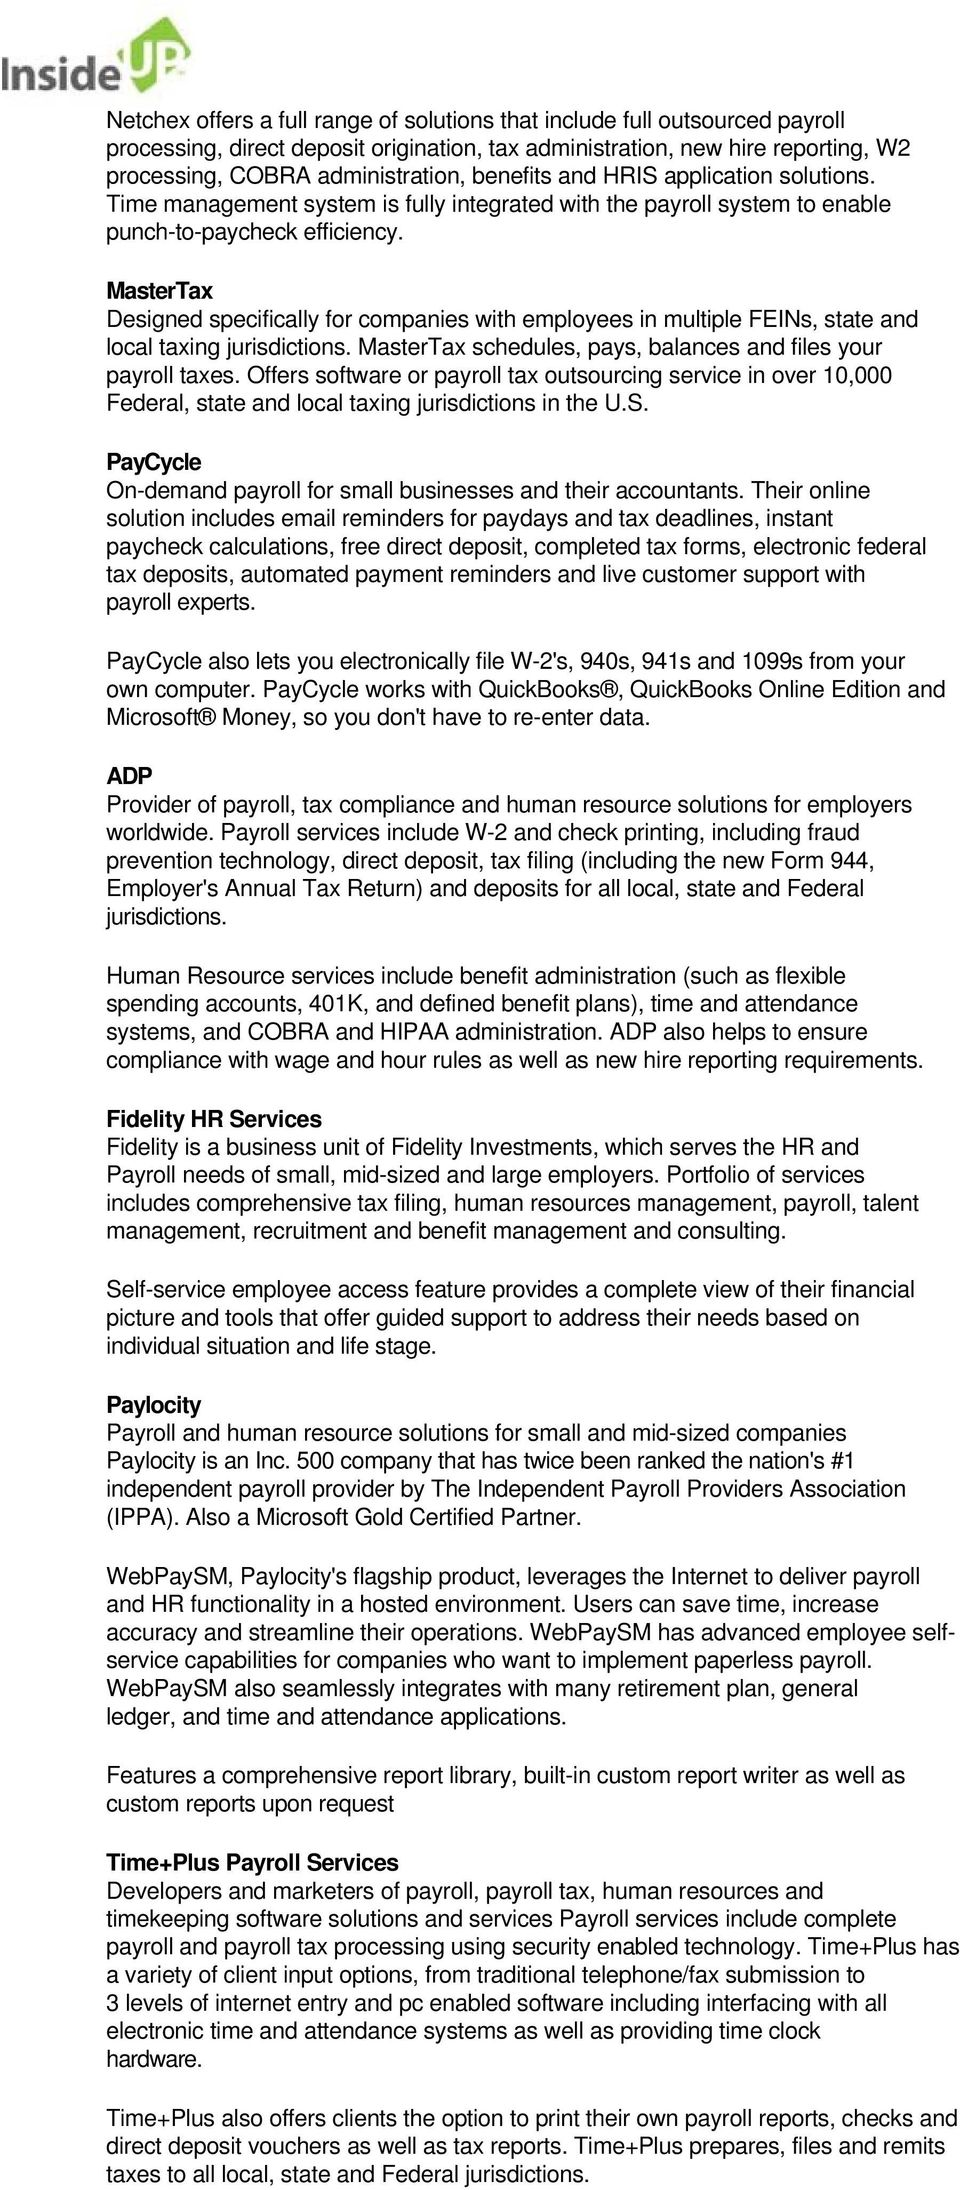 INCREASE EFFICIENCY WITH ENHANCED PAYROLL SERVICES - PDF